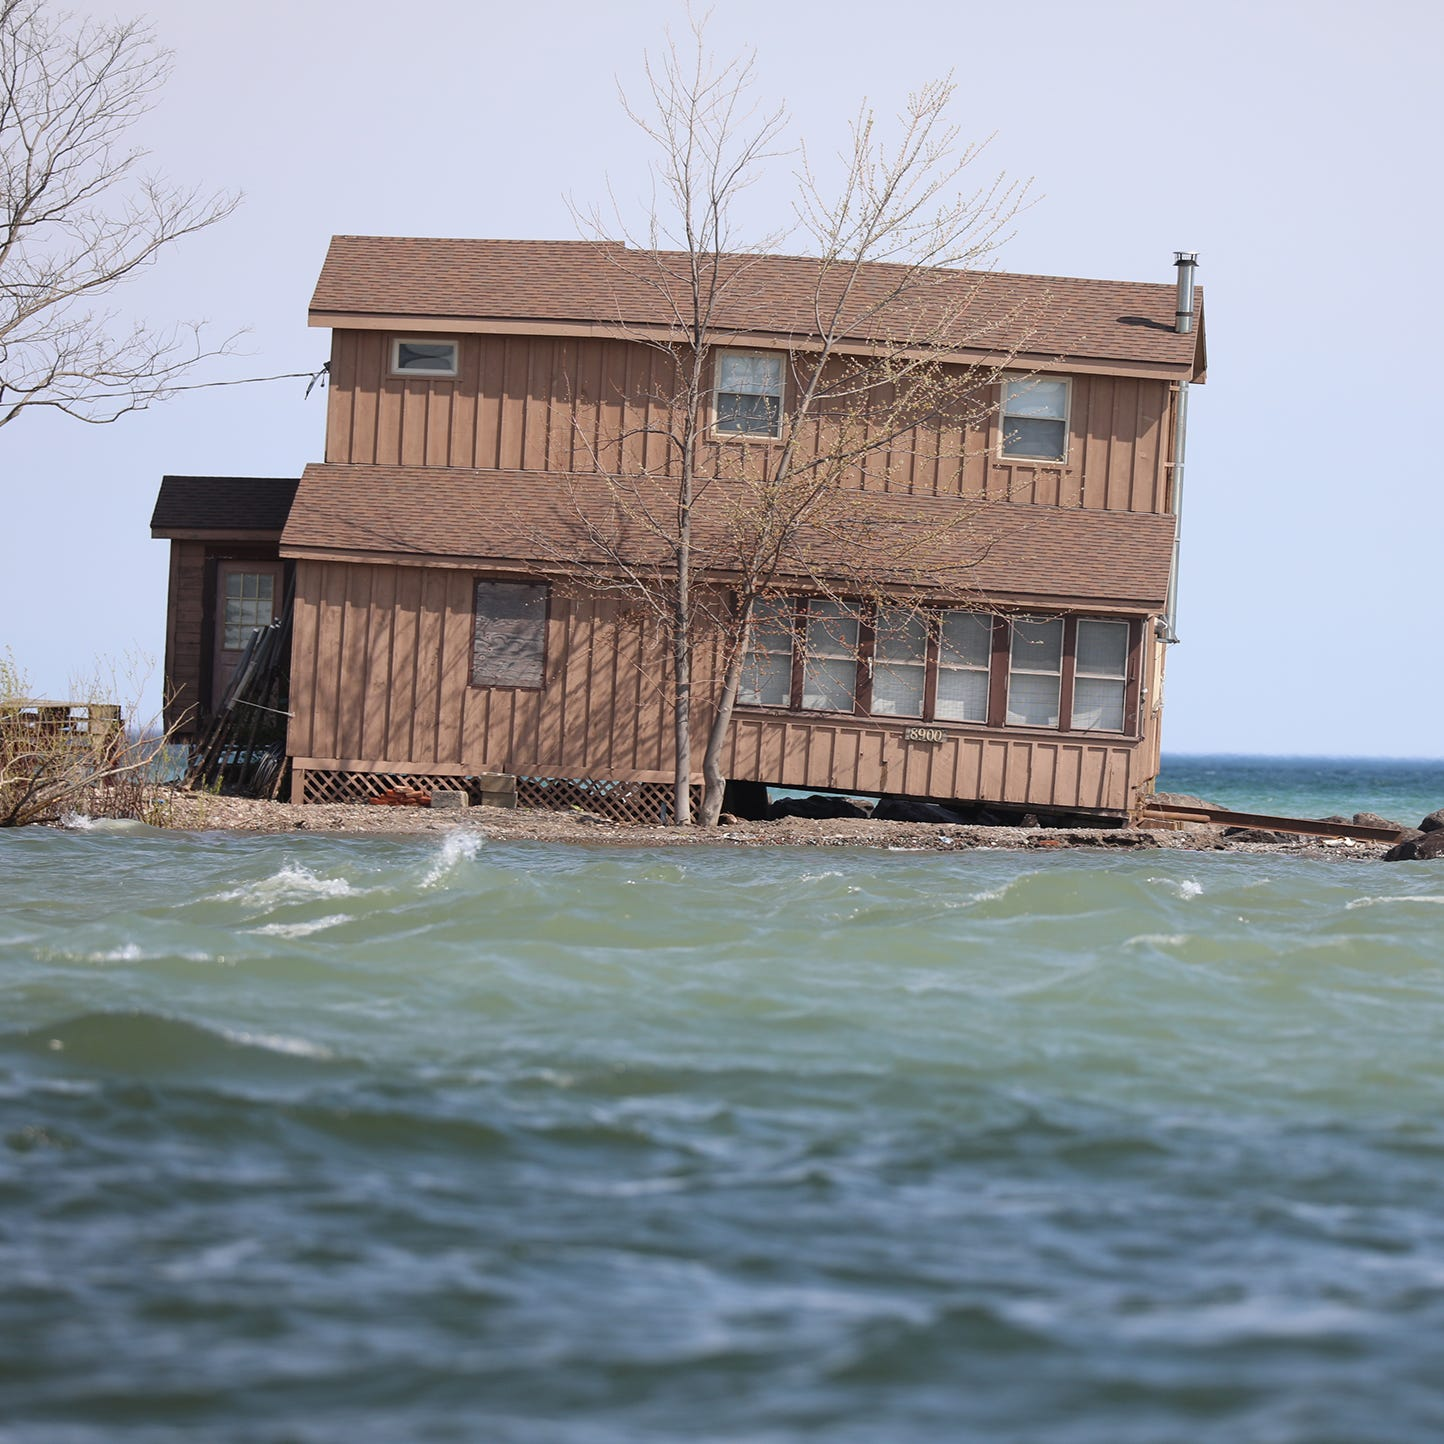 Possible flooding coming for Sodus, eastern Lake Ontario